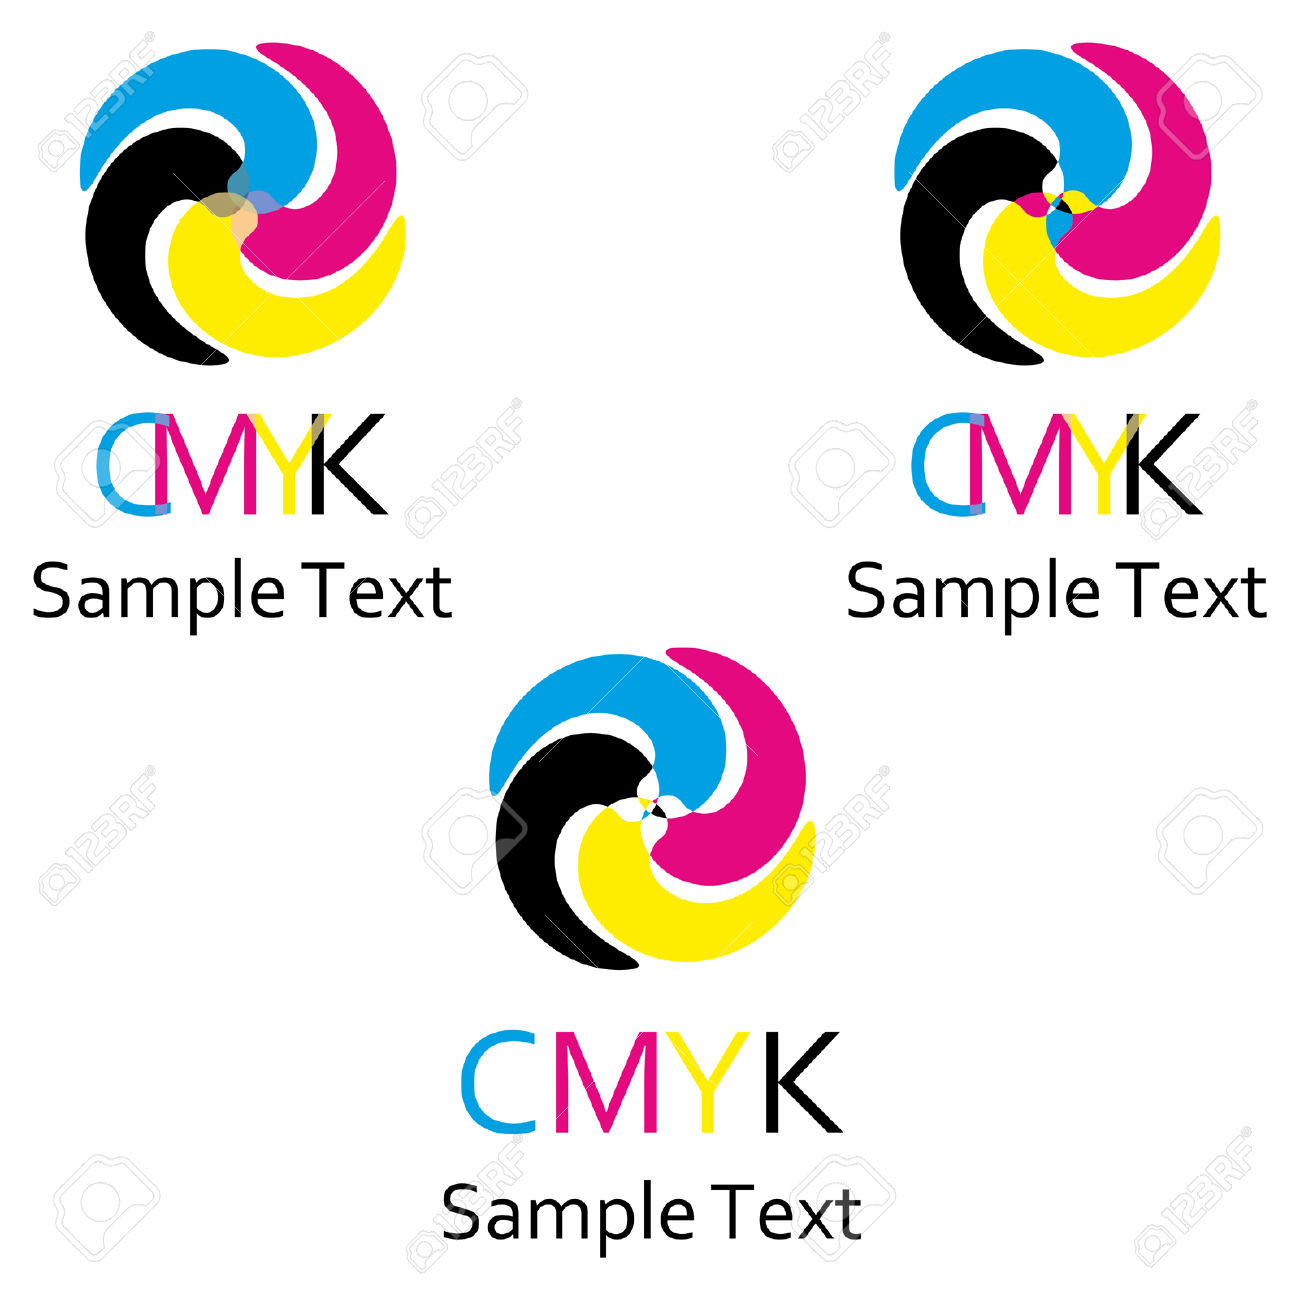 A Set Of Logos On The Theme Of Color Model Cmyk. Royalty Free.